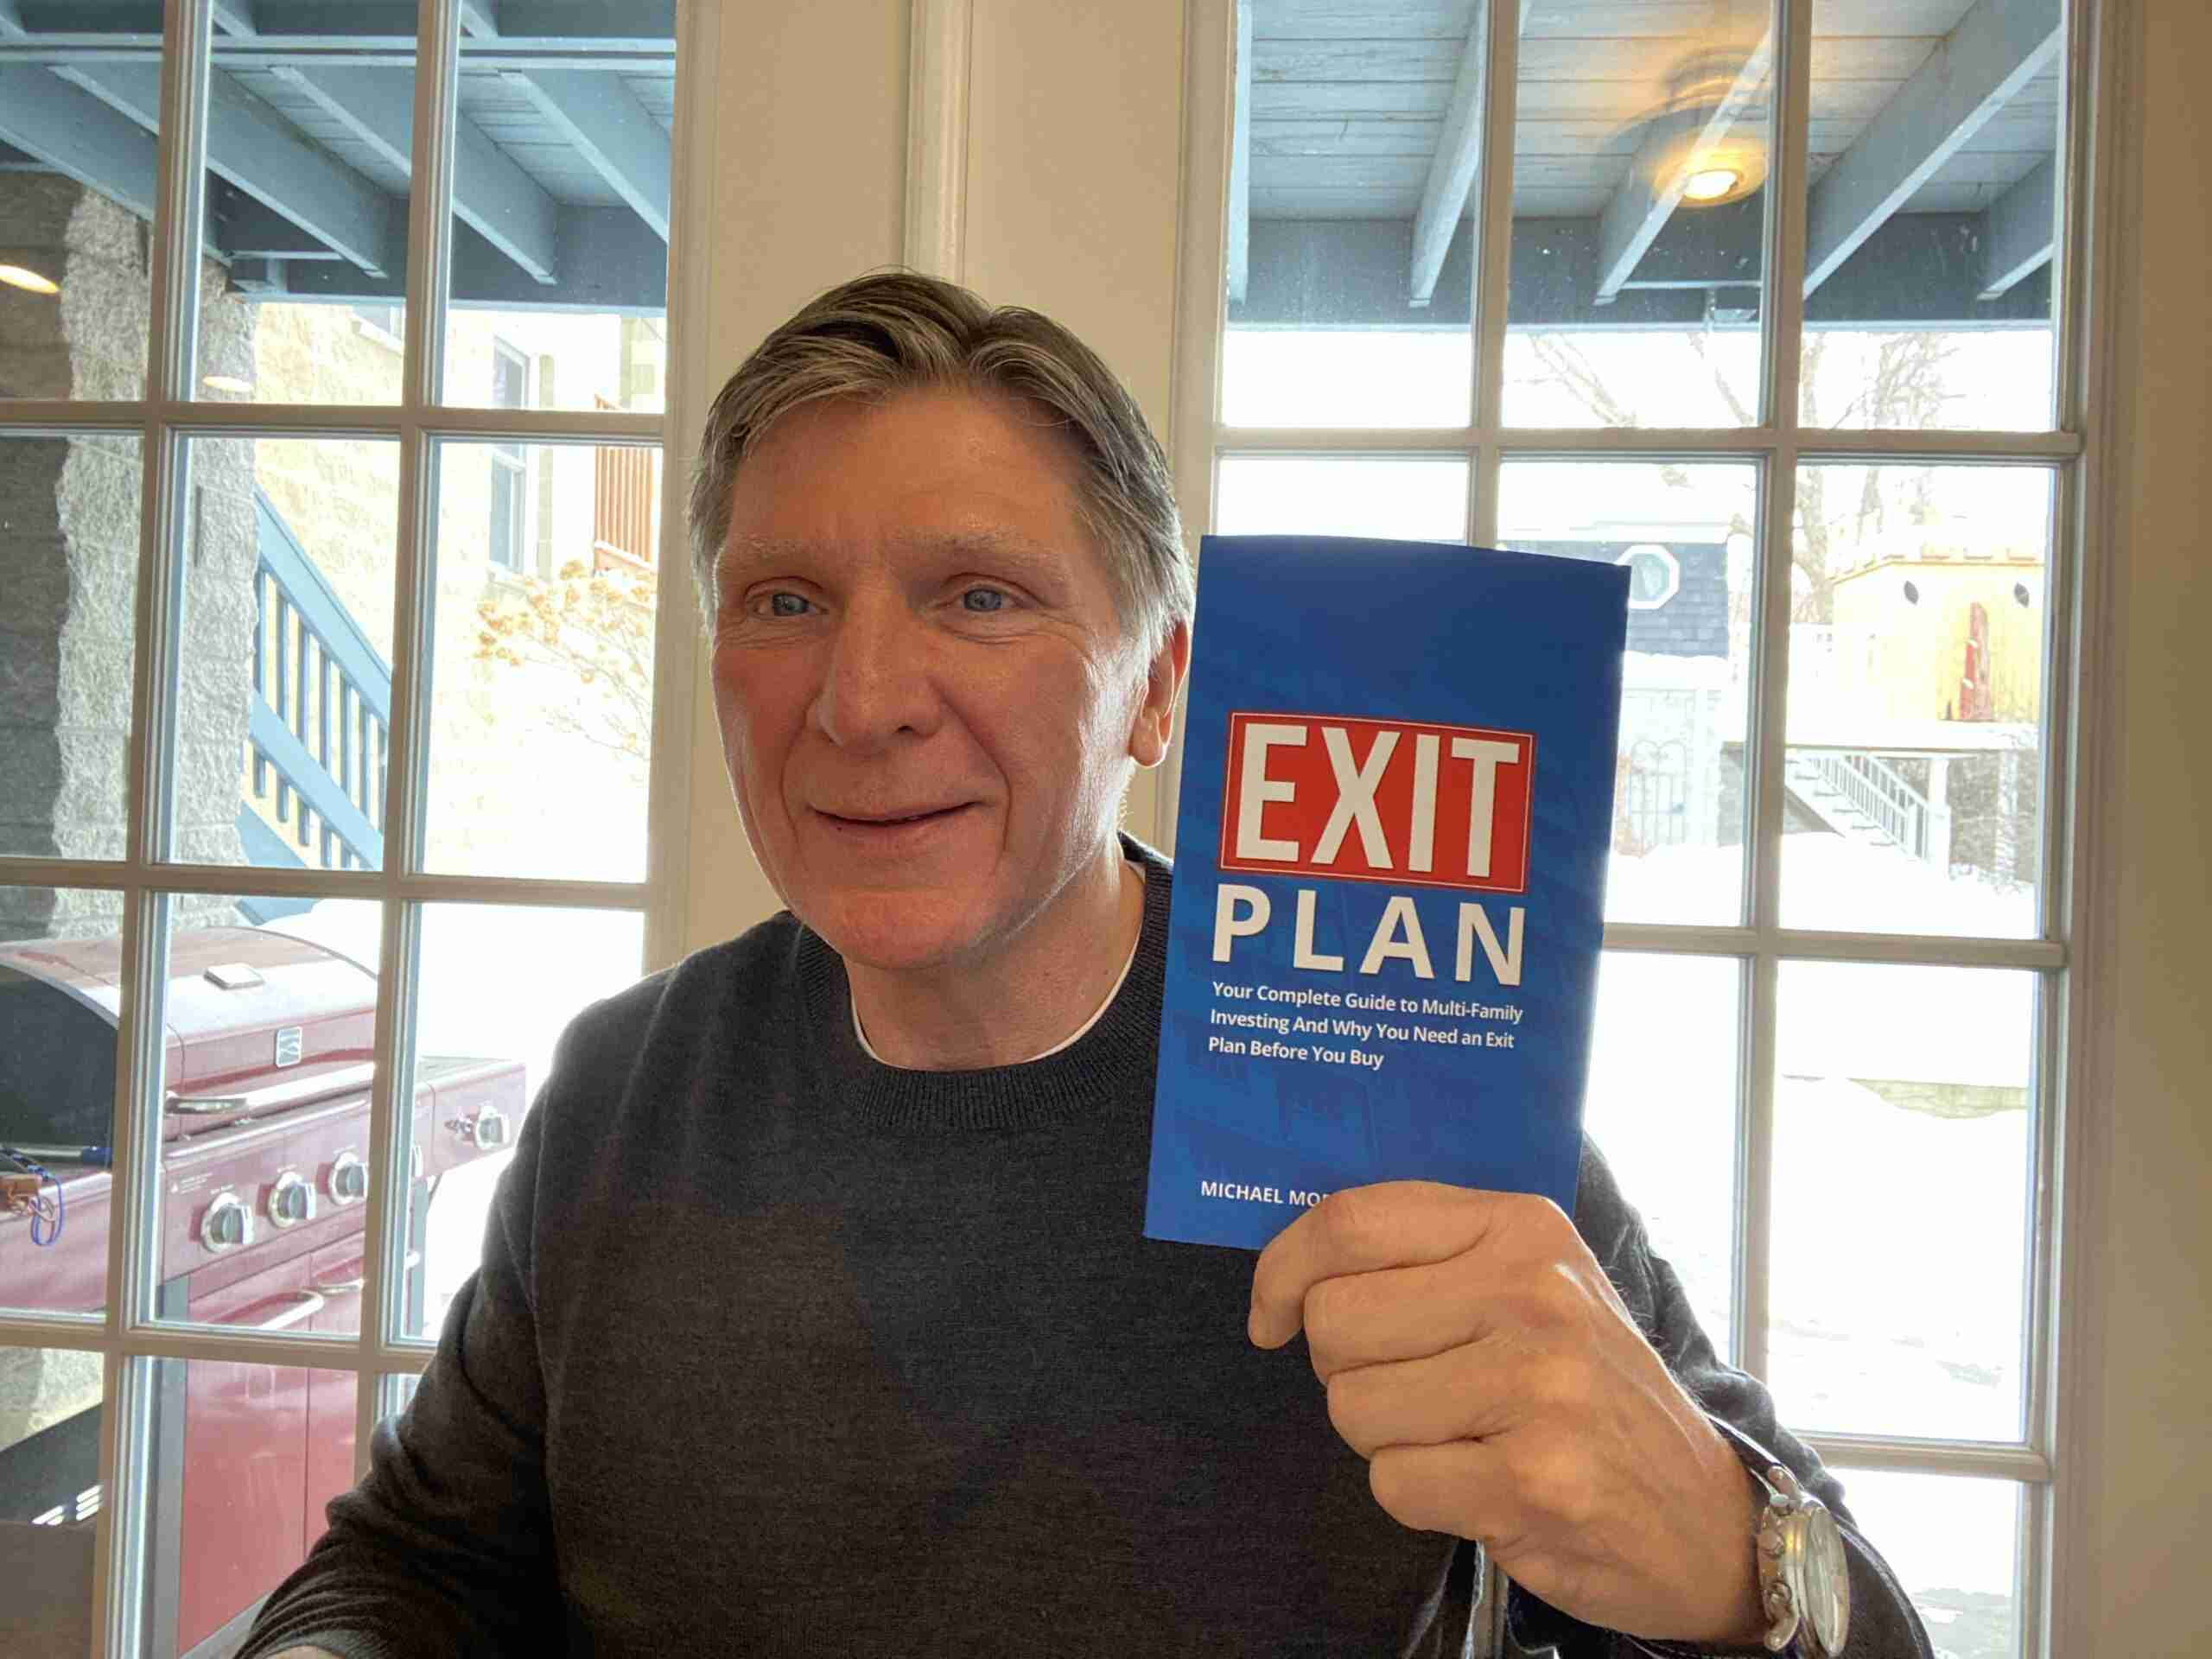 Mike holding Exit Plan book